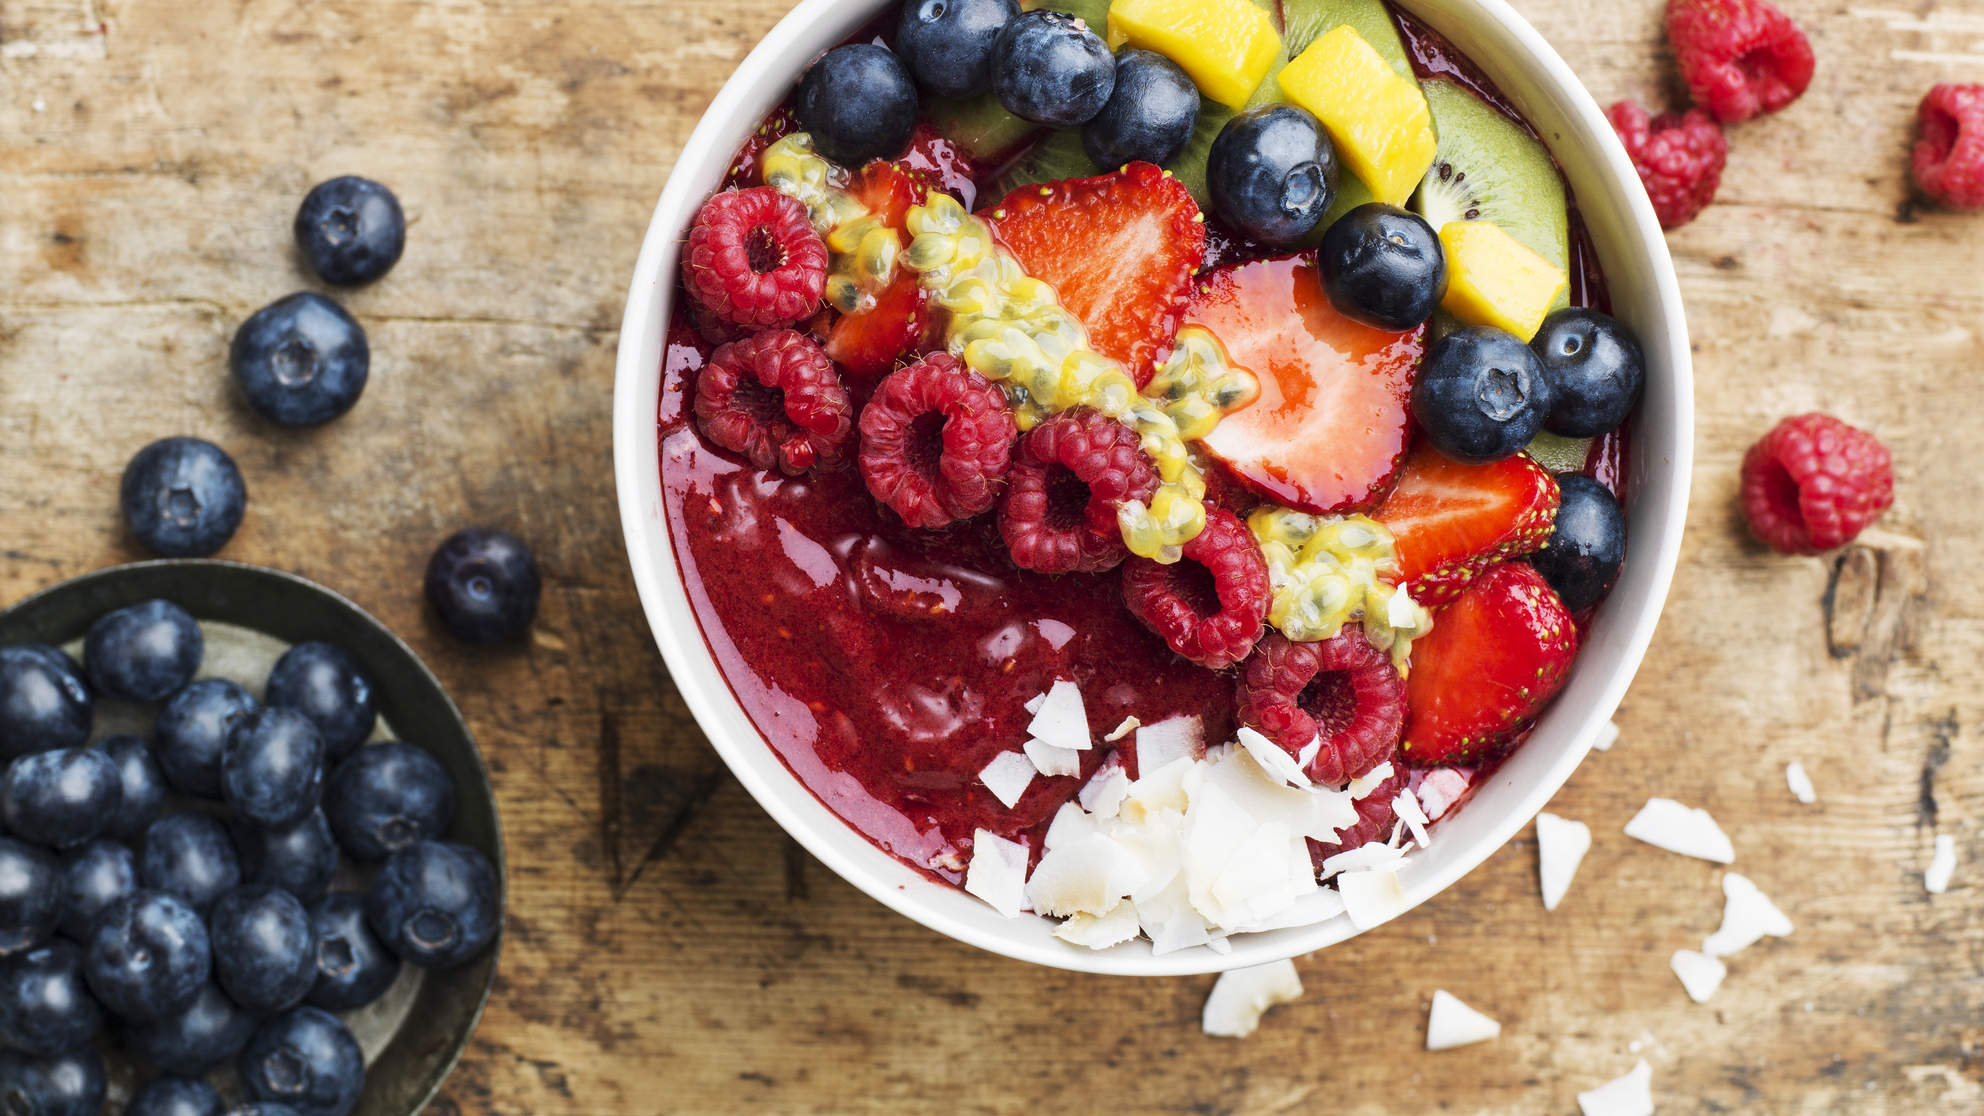 Are Smoothie Bowls Healthy? Plus: Five More Trendy Foods and Whether They're Actually Good for You